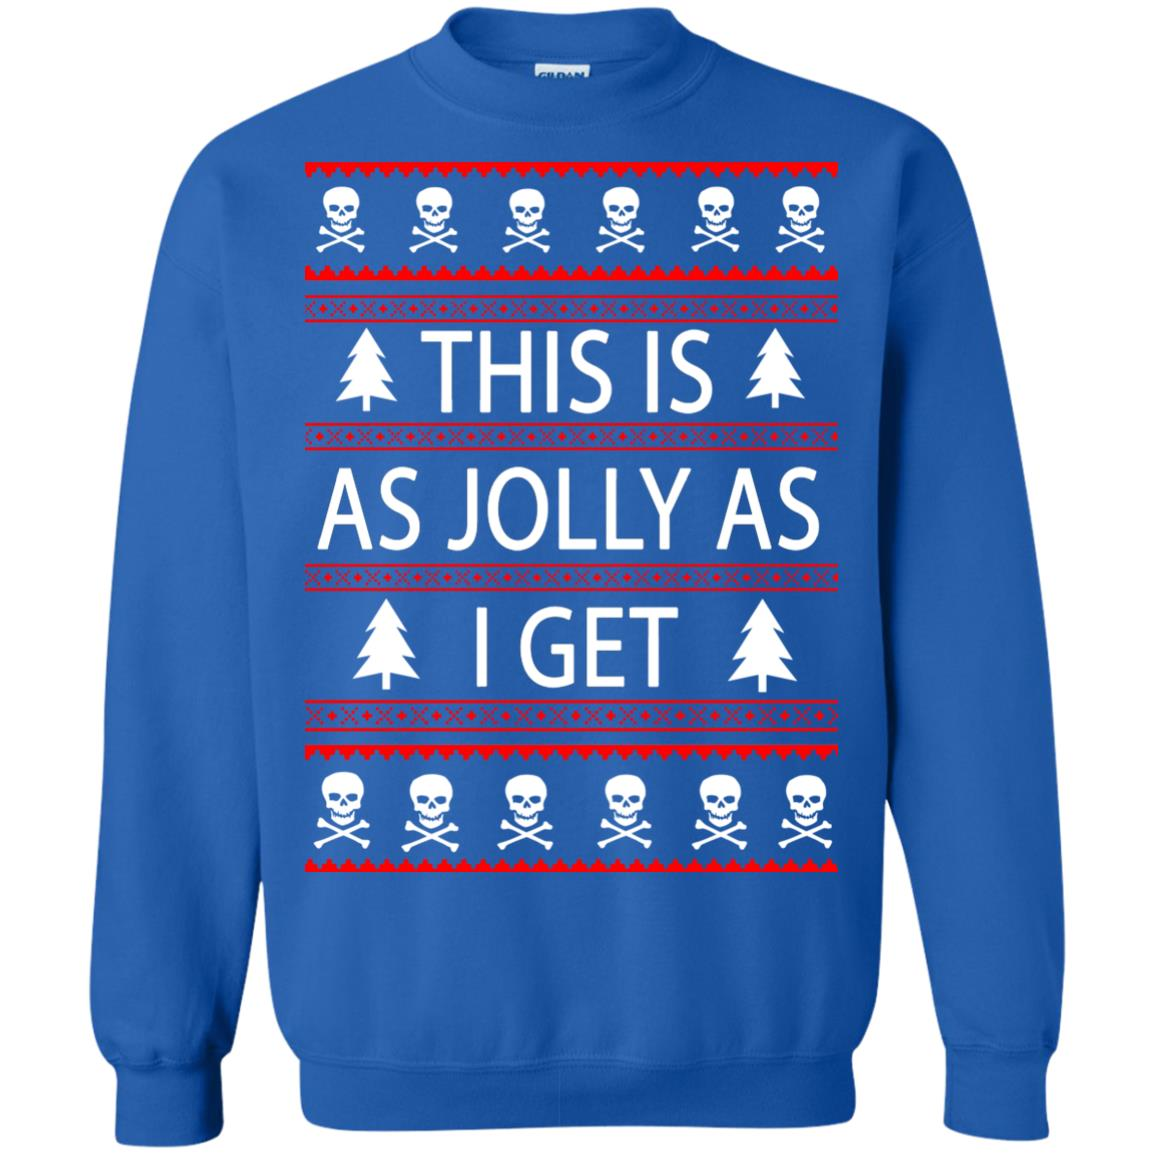 image 3169 - This Is as Jolly as I Get Emo Gothic Christmas Sweatshirts, Hoodie